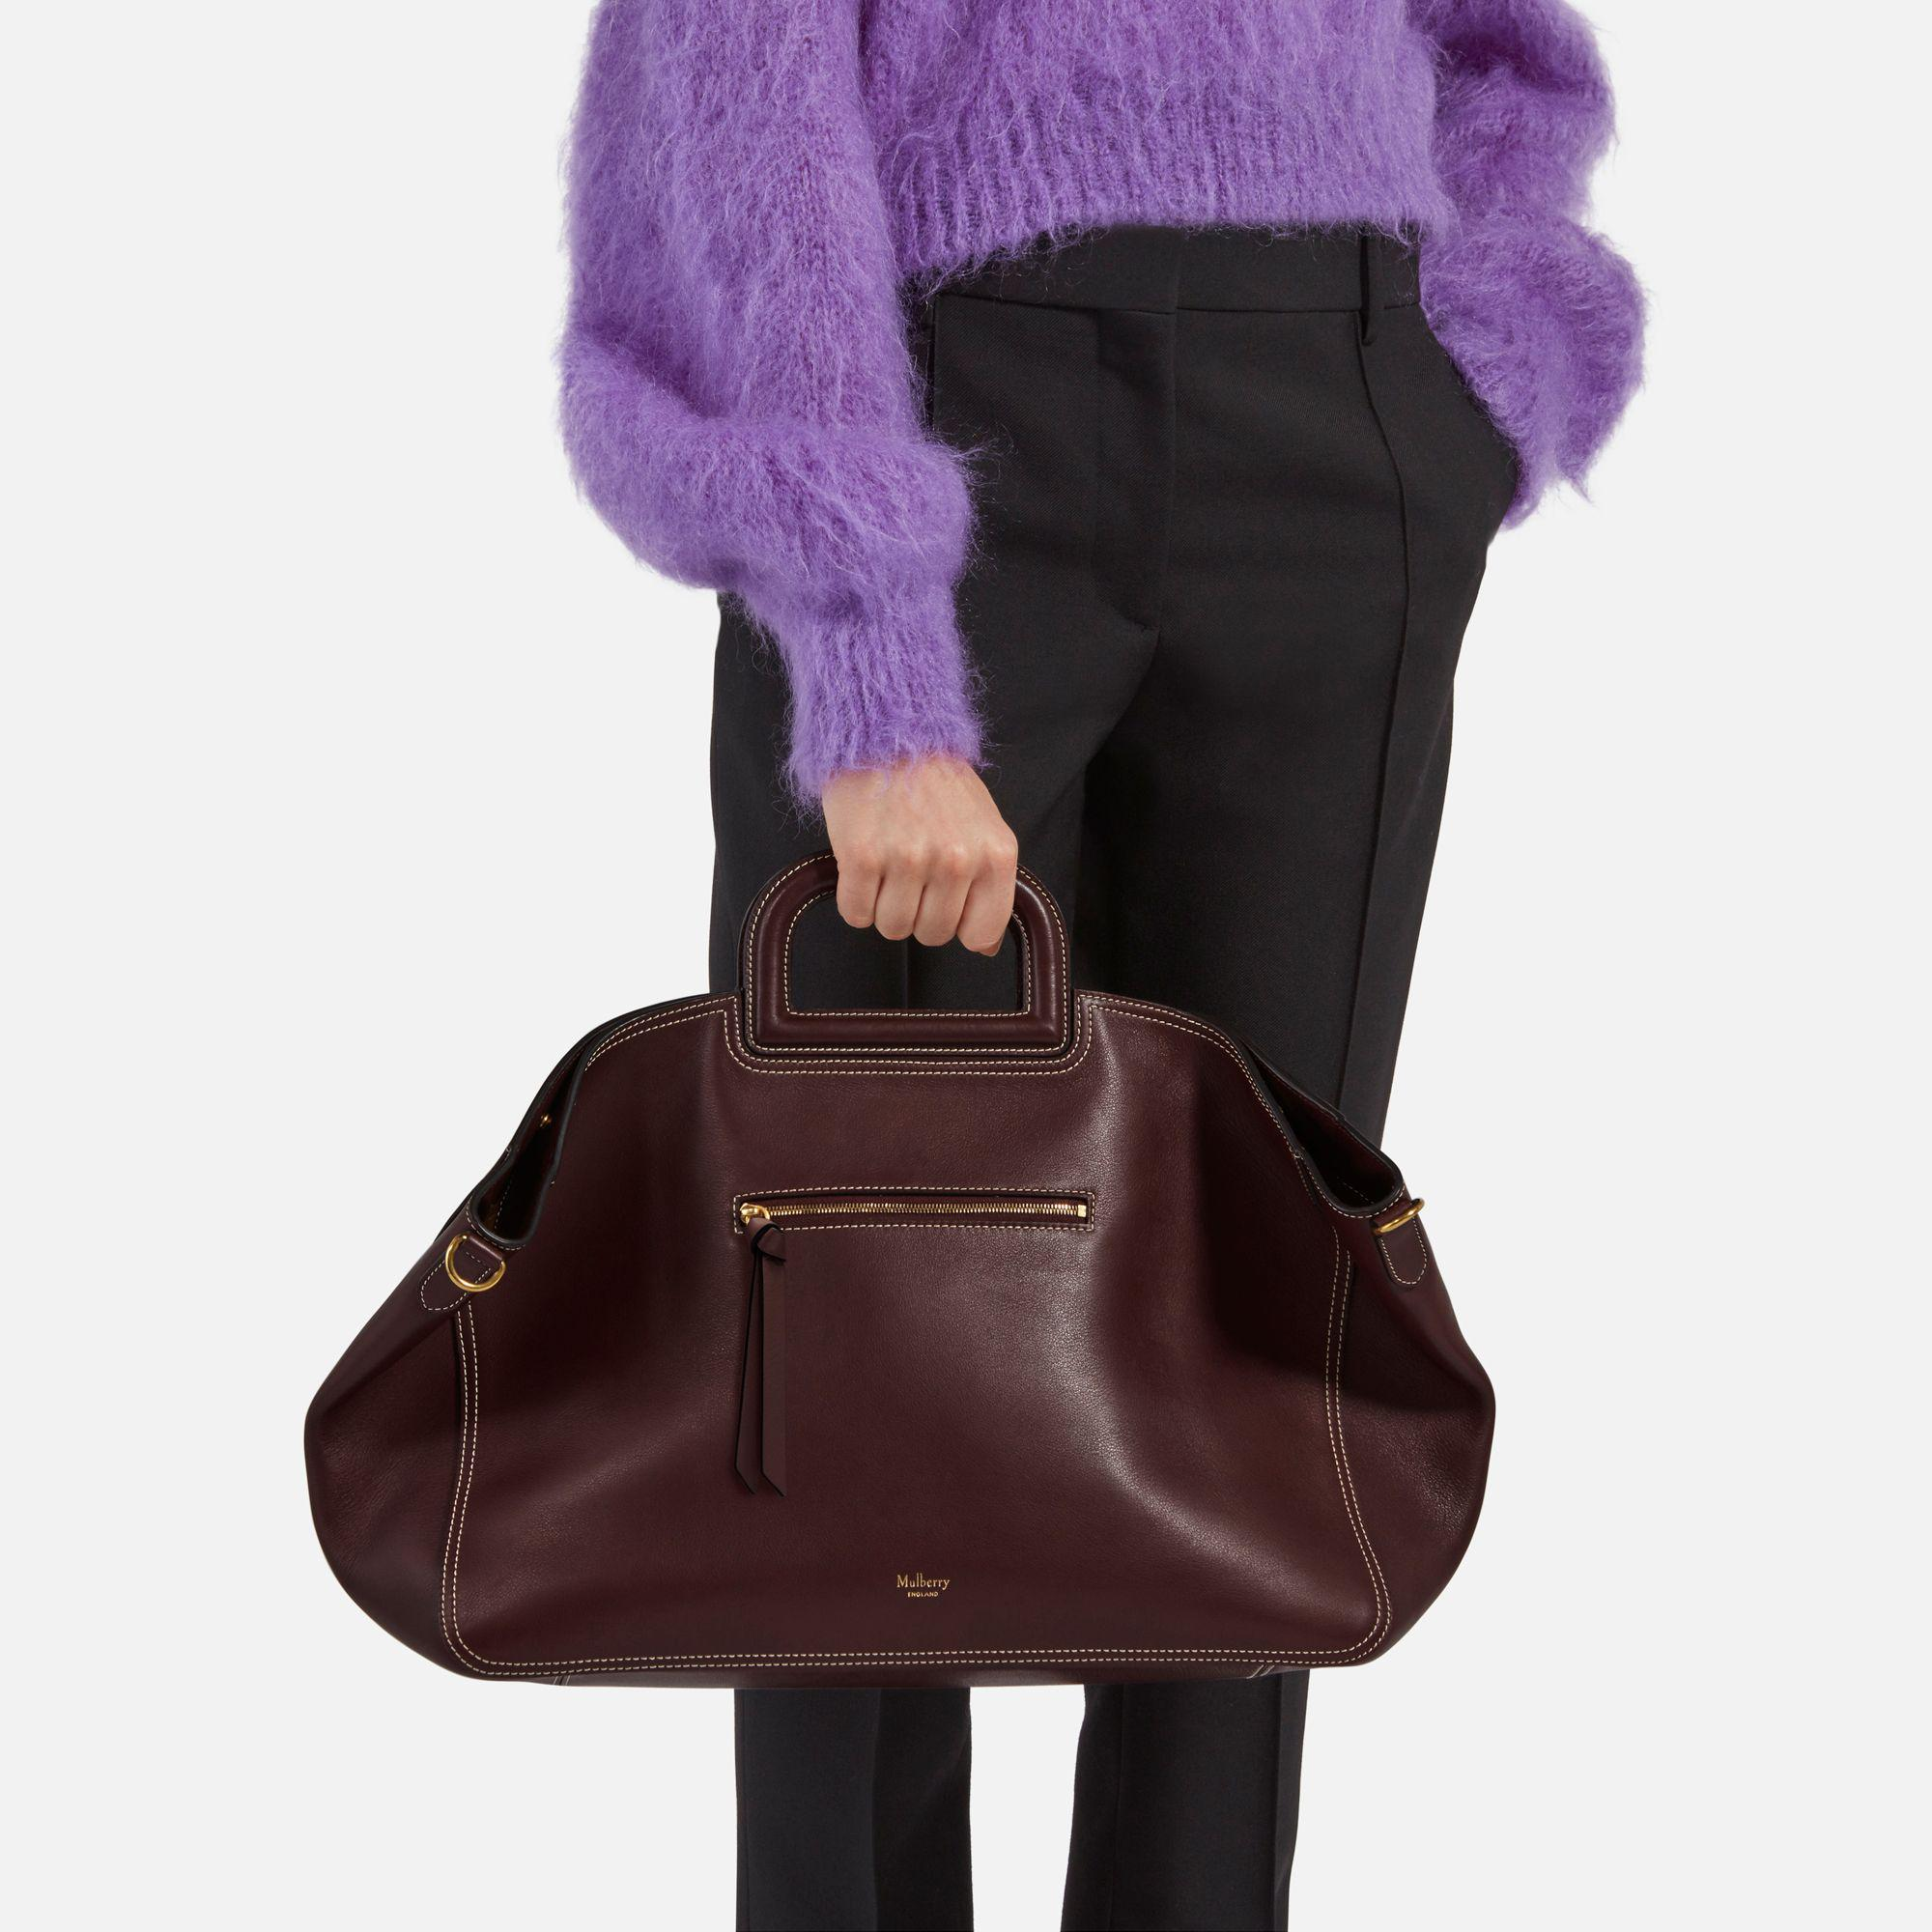 381b10be258d czech mulberry mulberry leighton small leather shoulder bag 3bf9e c98d9   hot lyst mulberry brimley tote 32862 092bd